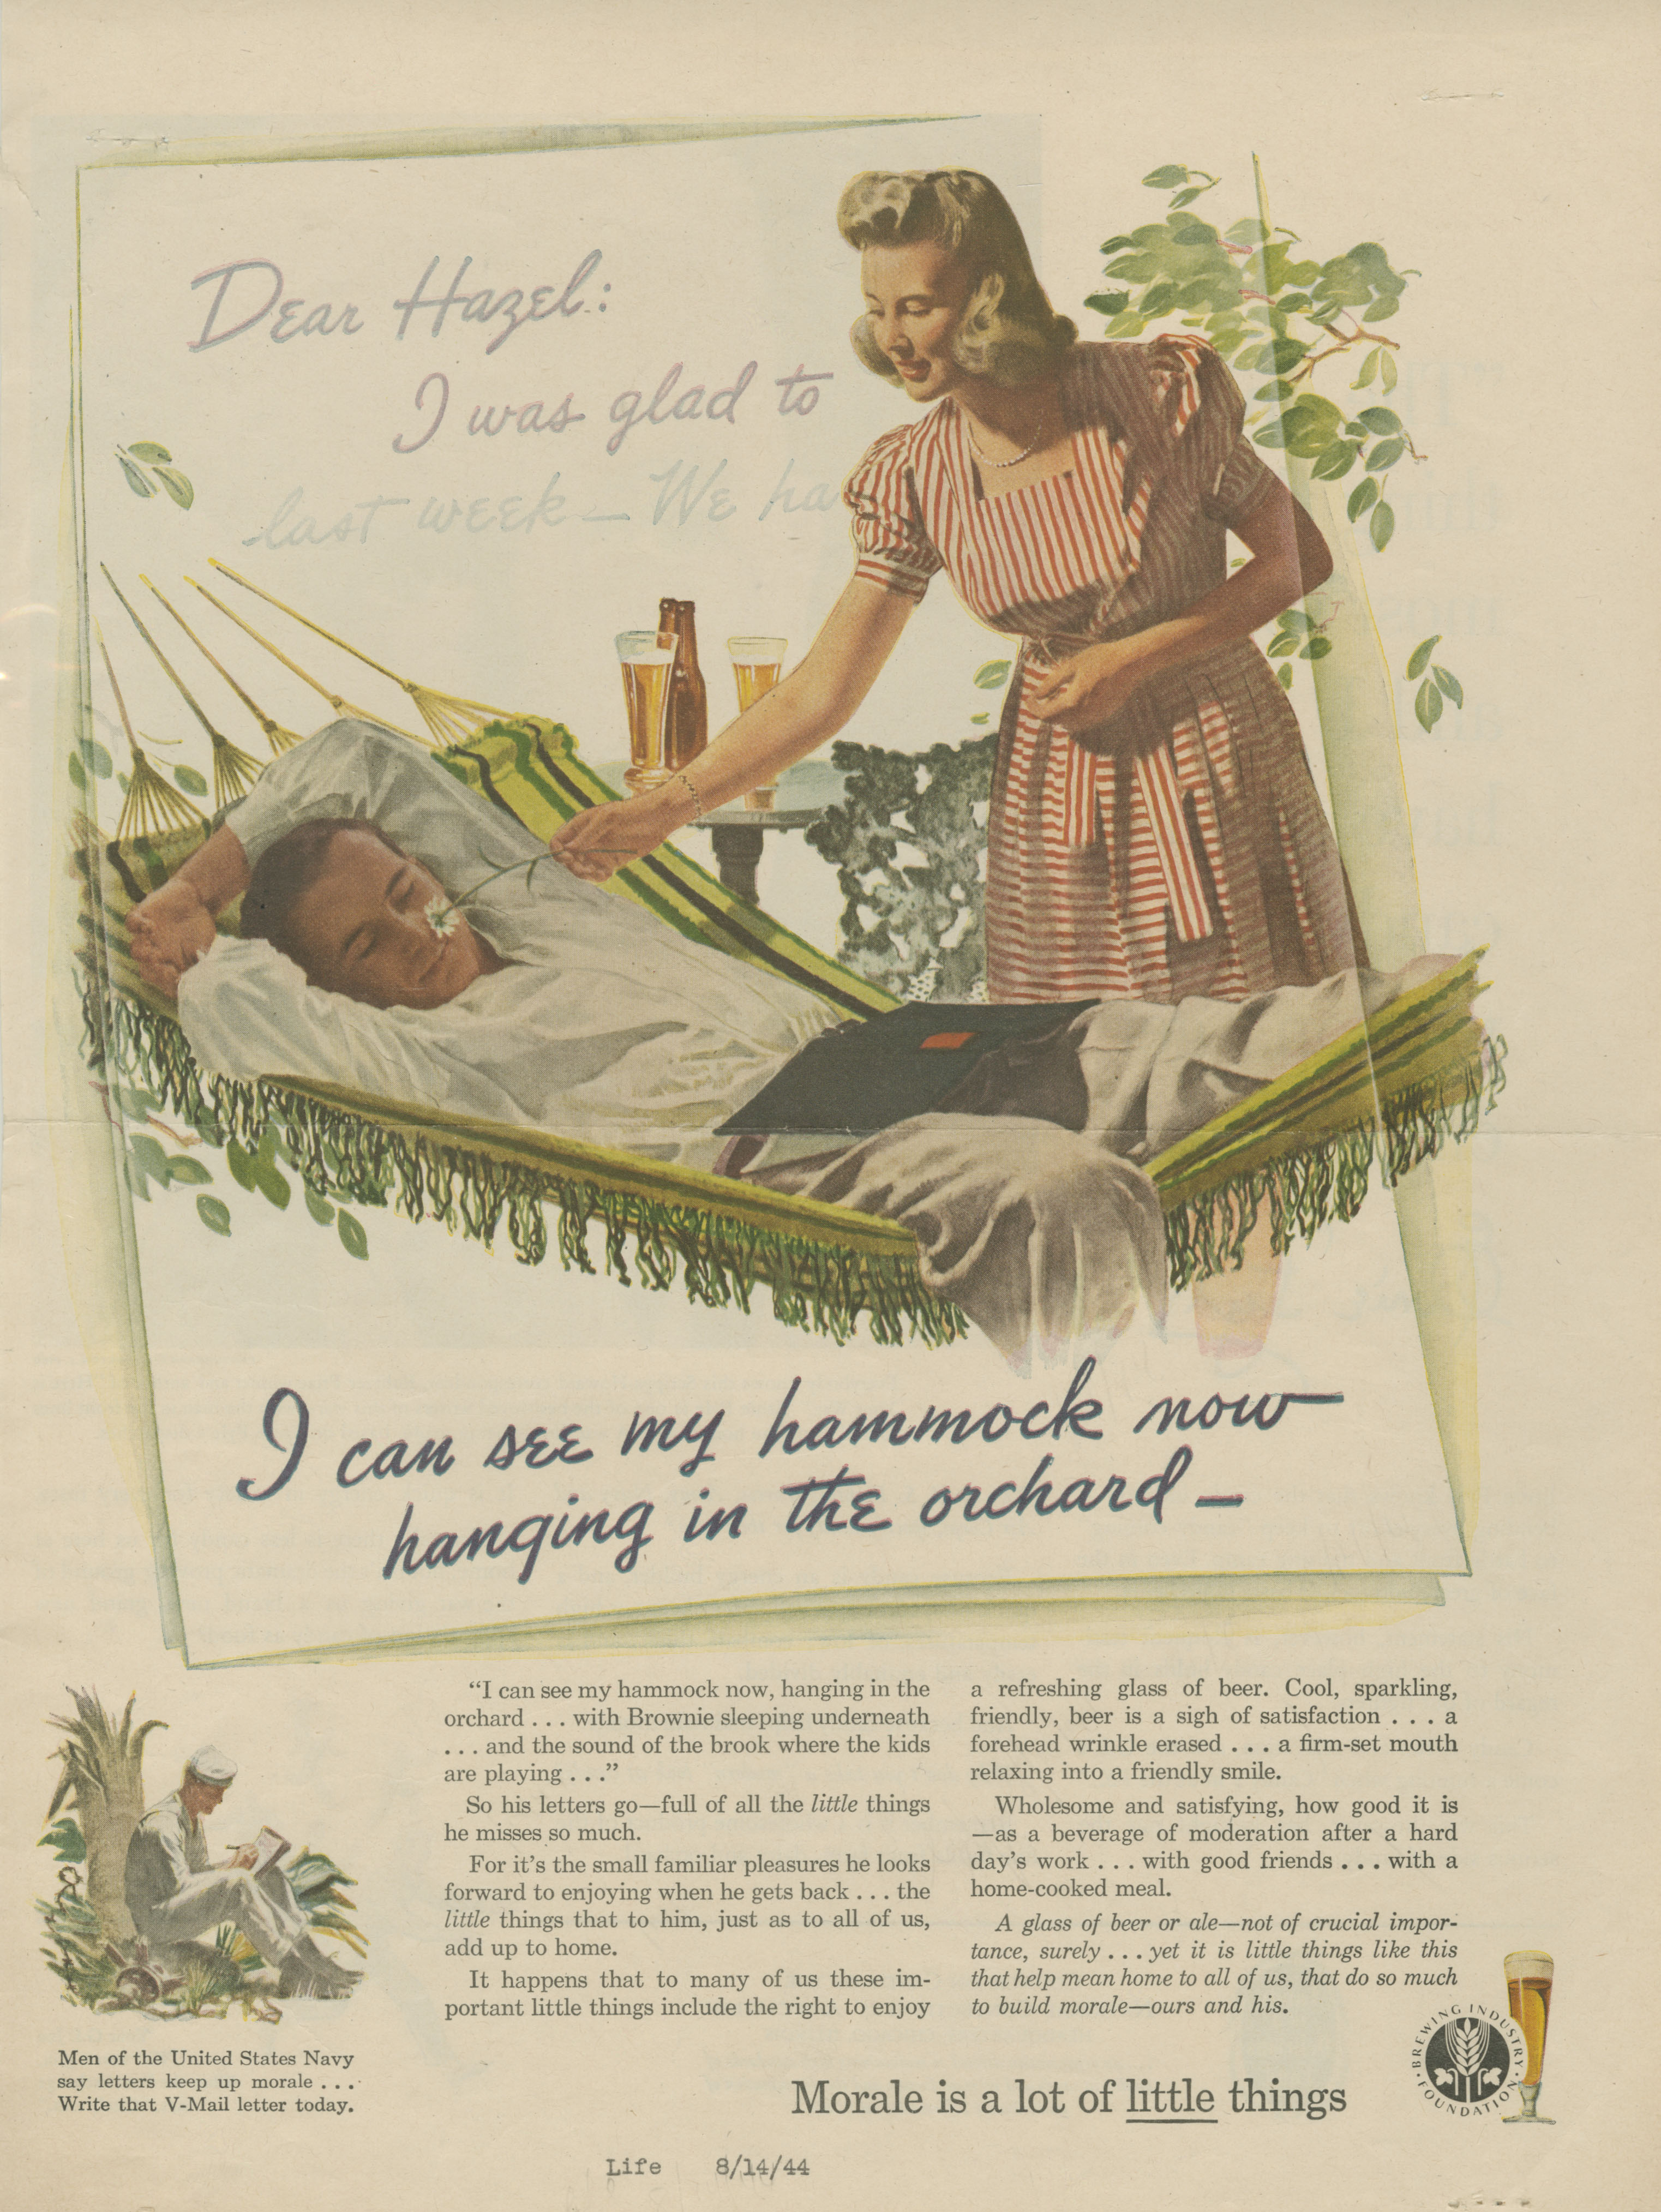 """""""Morale is a lot of Little Things,"""" 1944. Courtesy of the J. Walter Thompson Archives at the Duke University Library."""